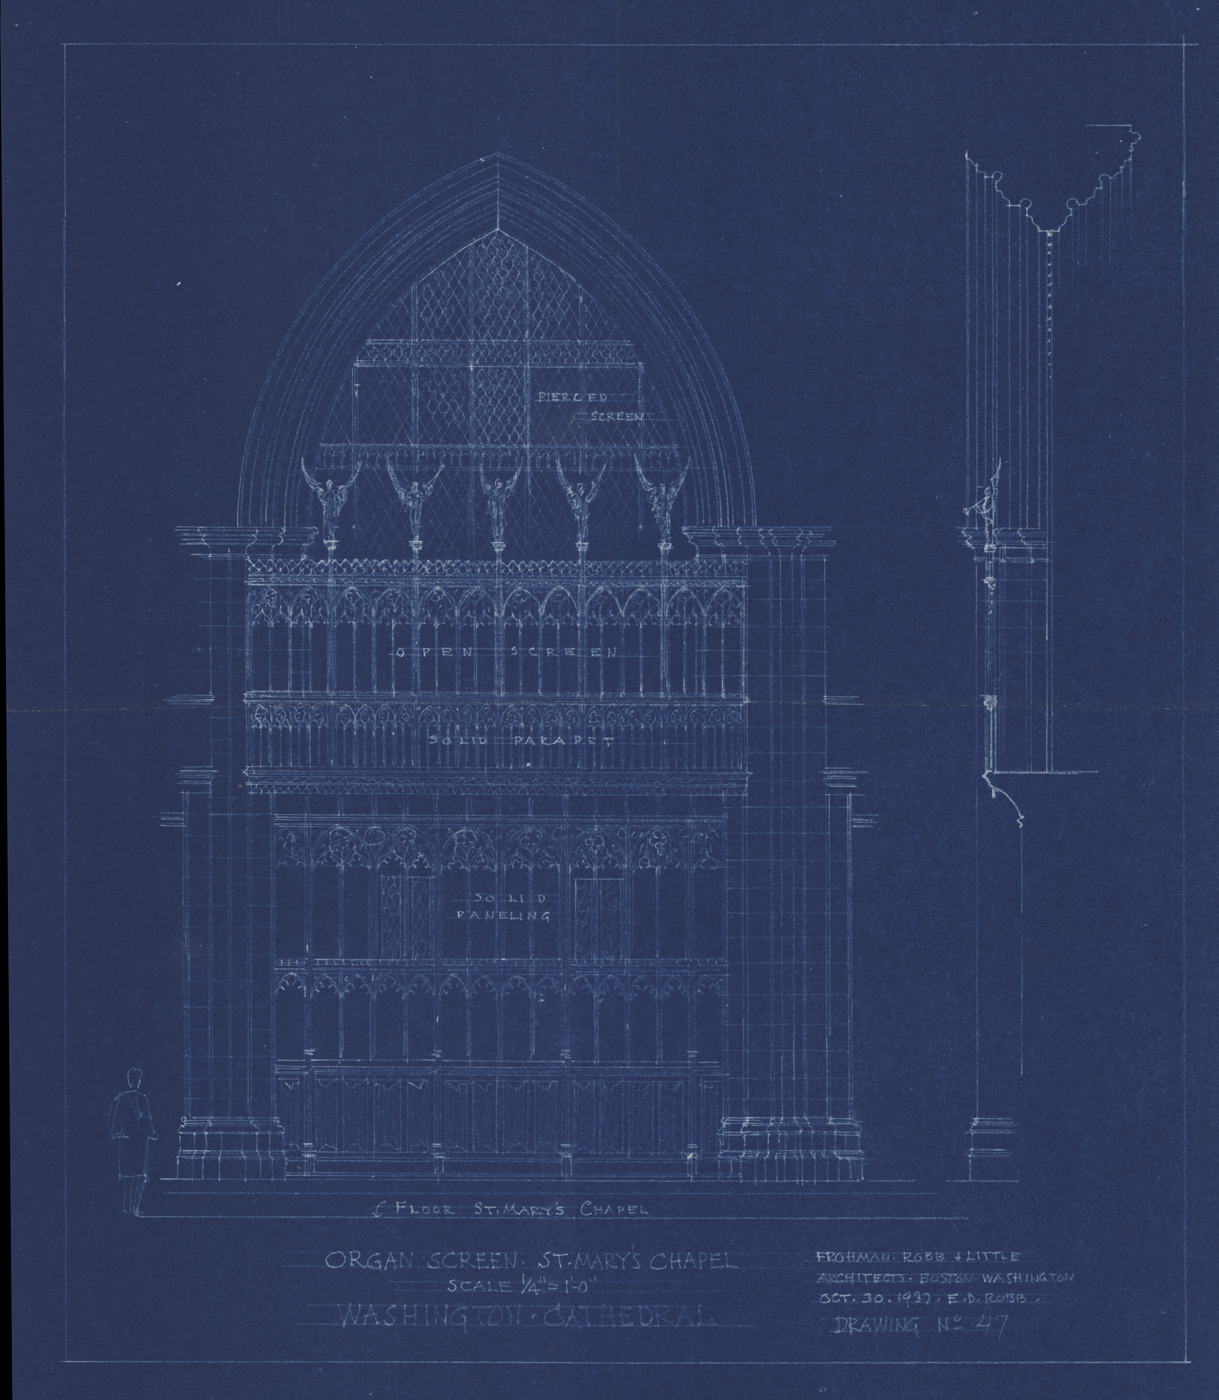 Collections highlight washington national cathedral national image of frohman robb and little blueprint malvernweather Image collections